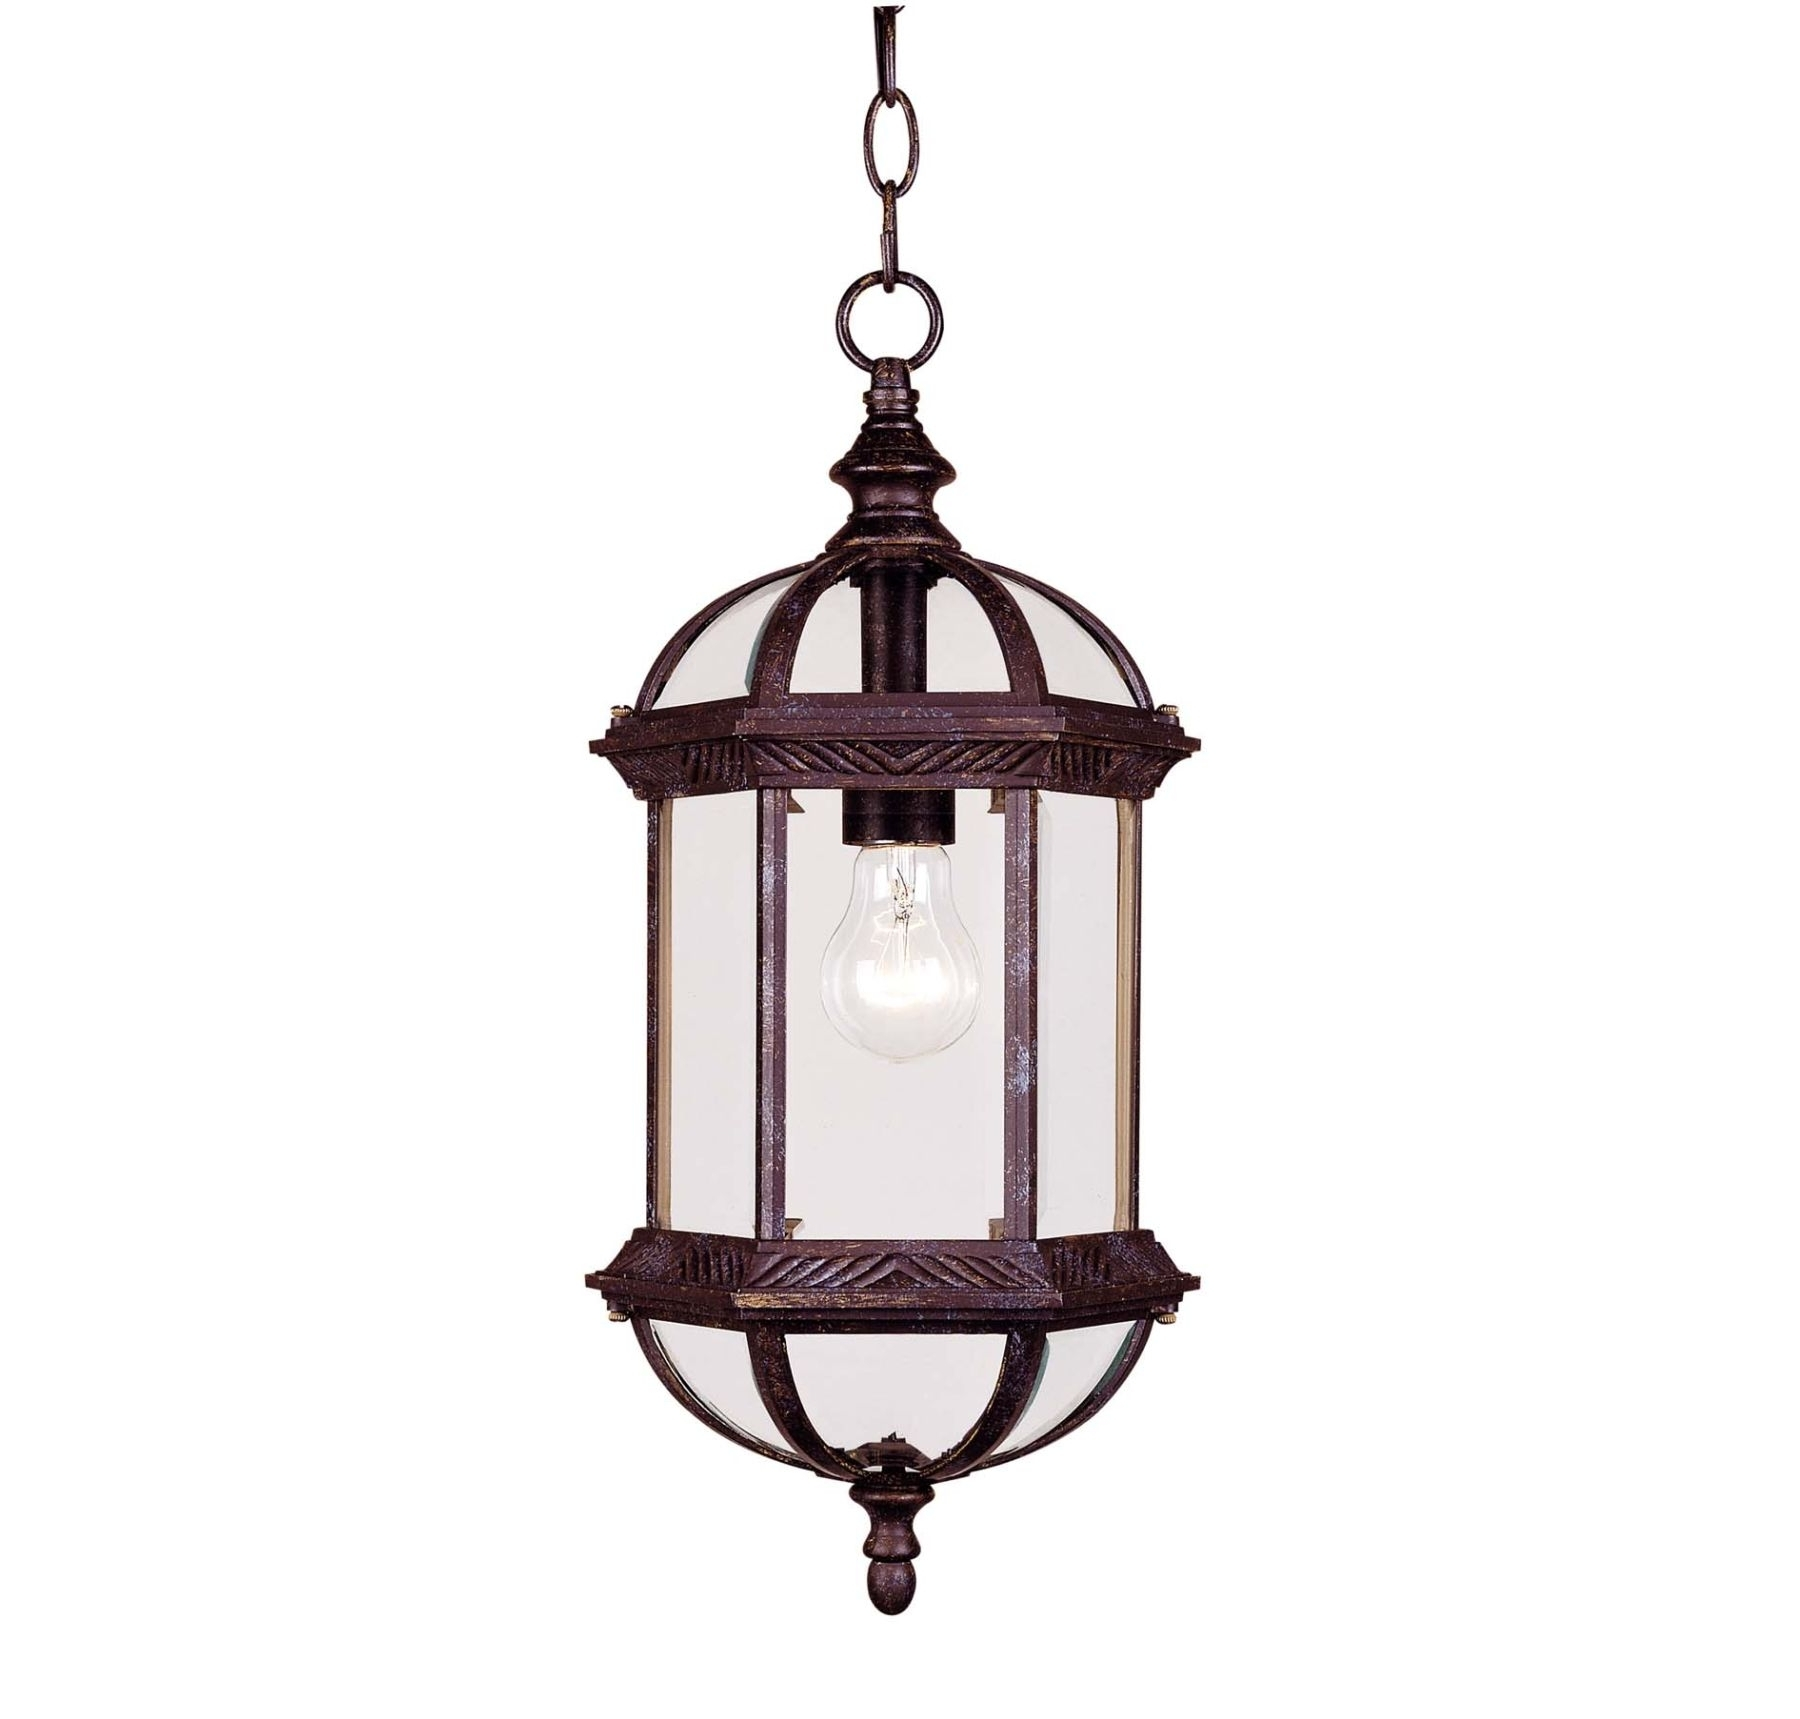 Outdoor Light : Glamorous Rustic Outdoor Pole Lighting , Rustic Throughout Favorite Outdoor Pole Lanterns (Gallery 1 of 20)